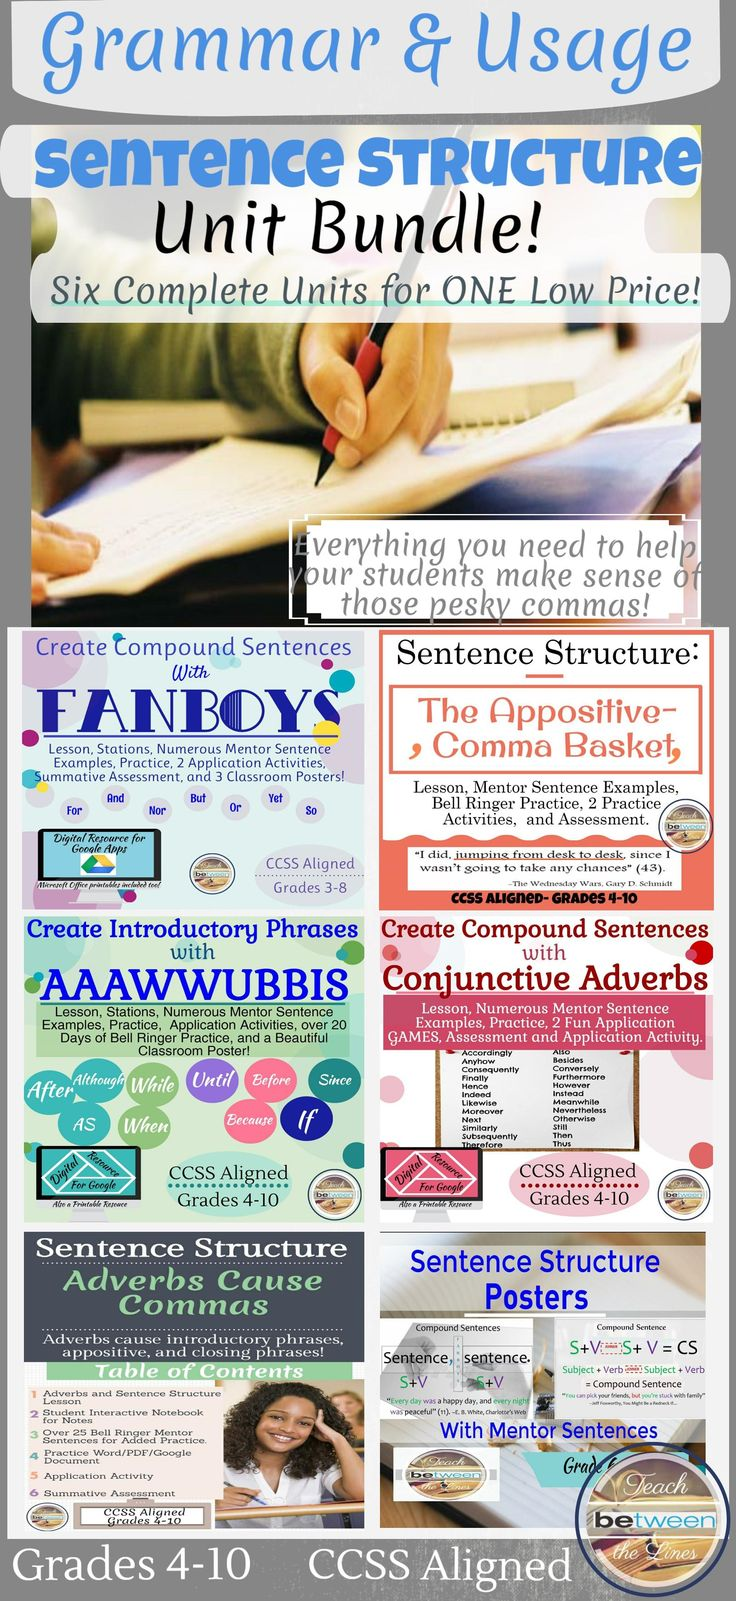 This complete unit bundle includes everything you need to teach sentence structure and comma placement to your students. Each unit will support students in creating: -compound sentences -complex sentences -a variety of introductory phrases to vary sentence beginnings - appositives to vary sentence structure, create interest, create explanations, and a strong writer's voice. teaching grammar, grammar, writing, teaching writing, middle school writing, high school writing, FANBOYS, AAAWWUBBIS,